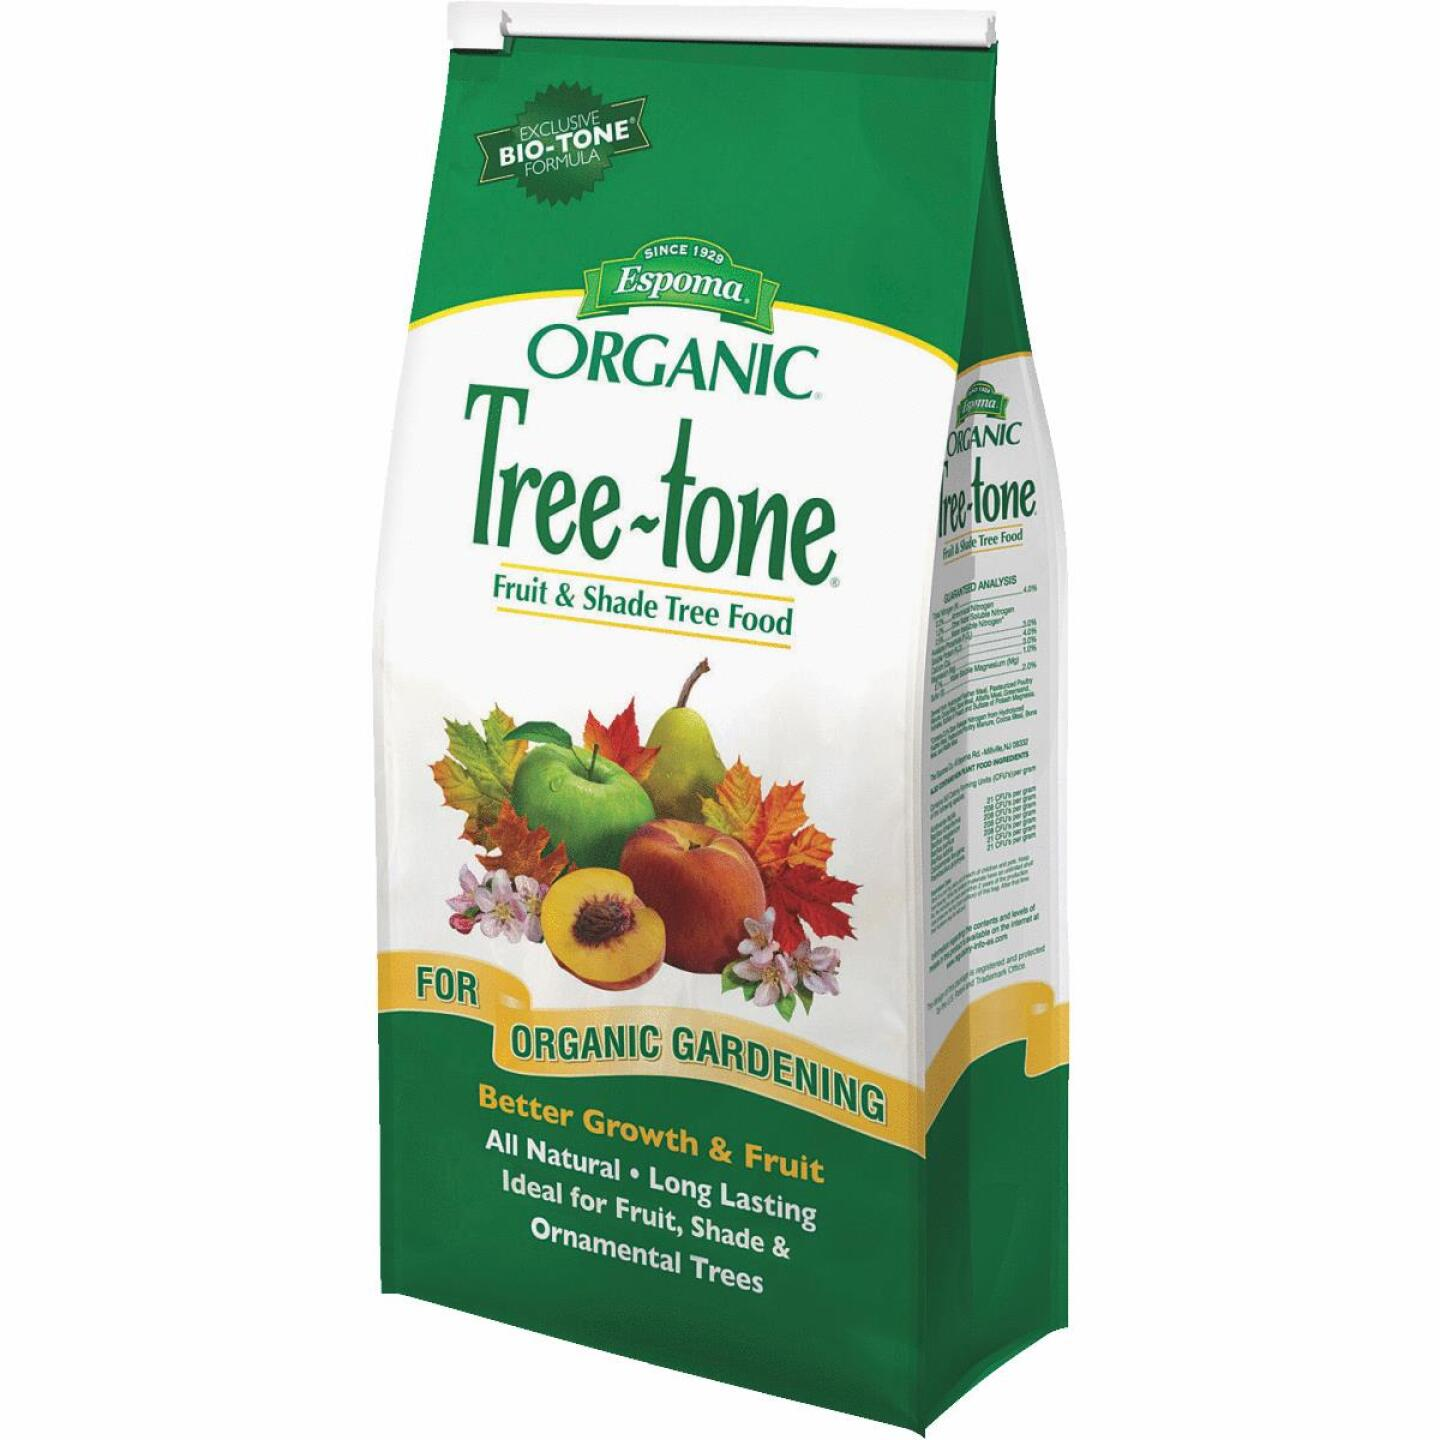 Espoma Tree-tone 4 Lb. 6-3-2 Organic Tree & Shrub Fertilizer Image 1